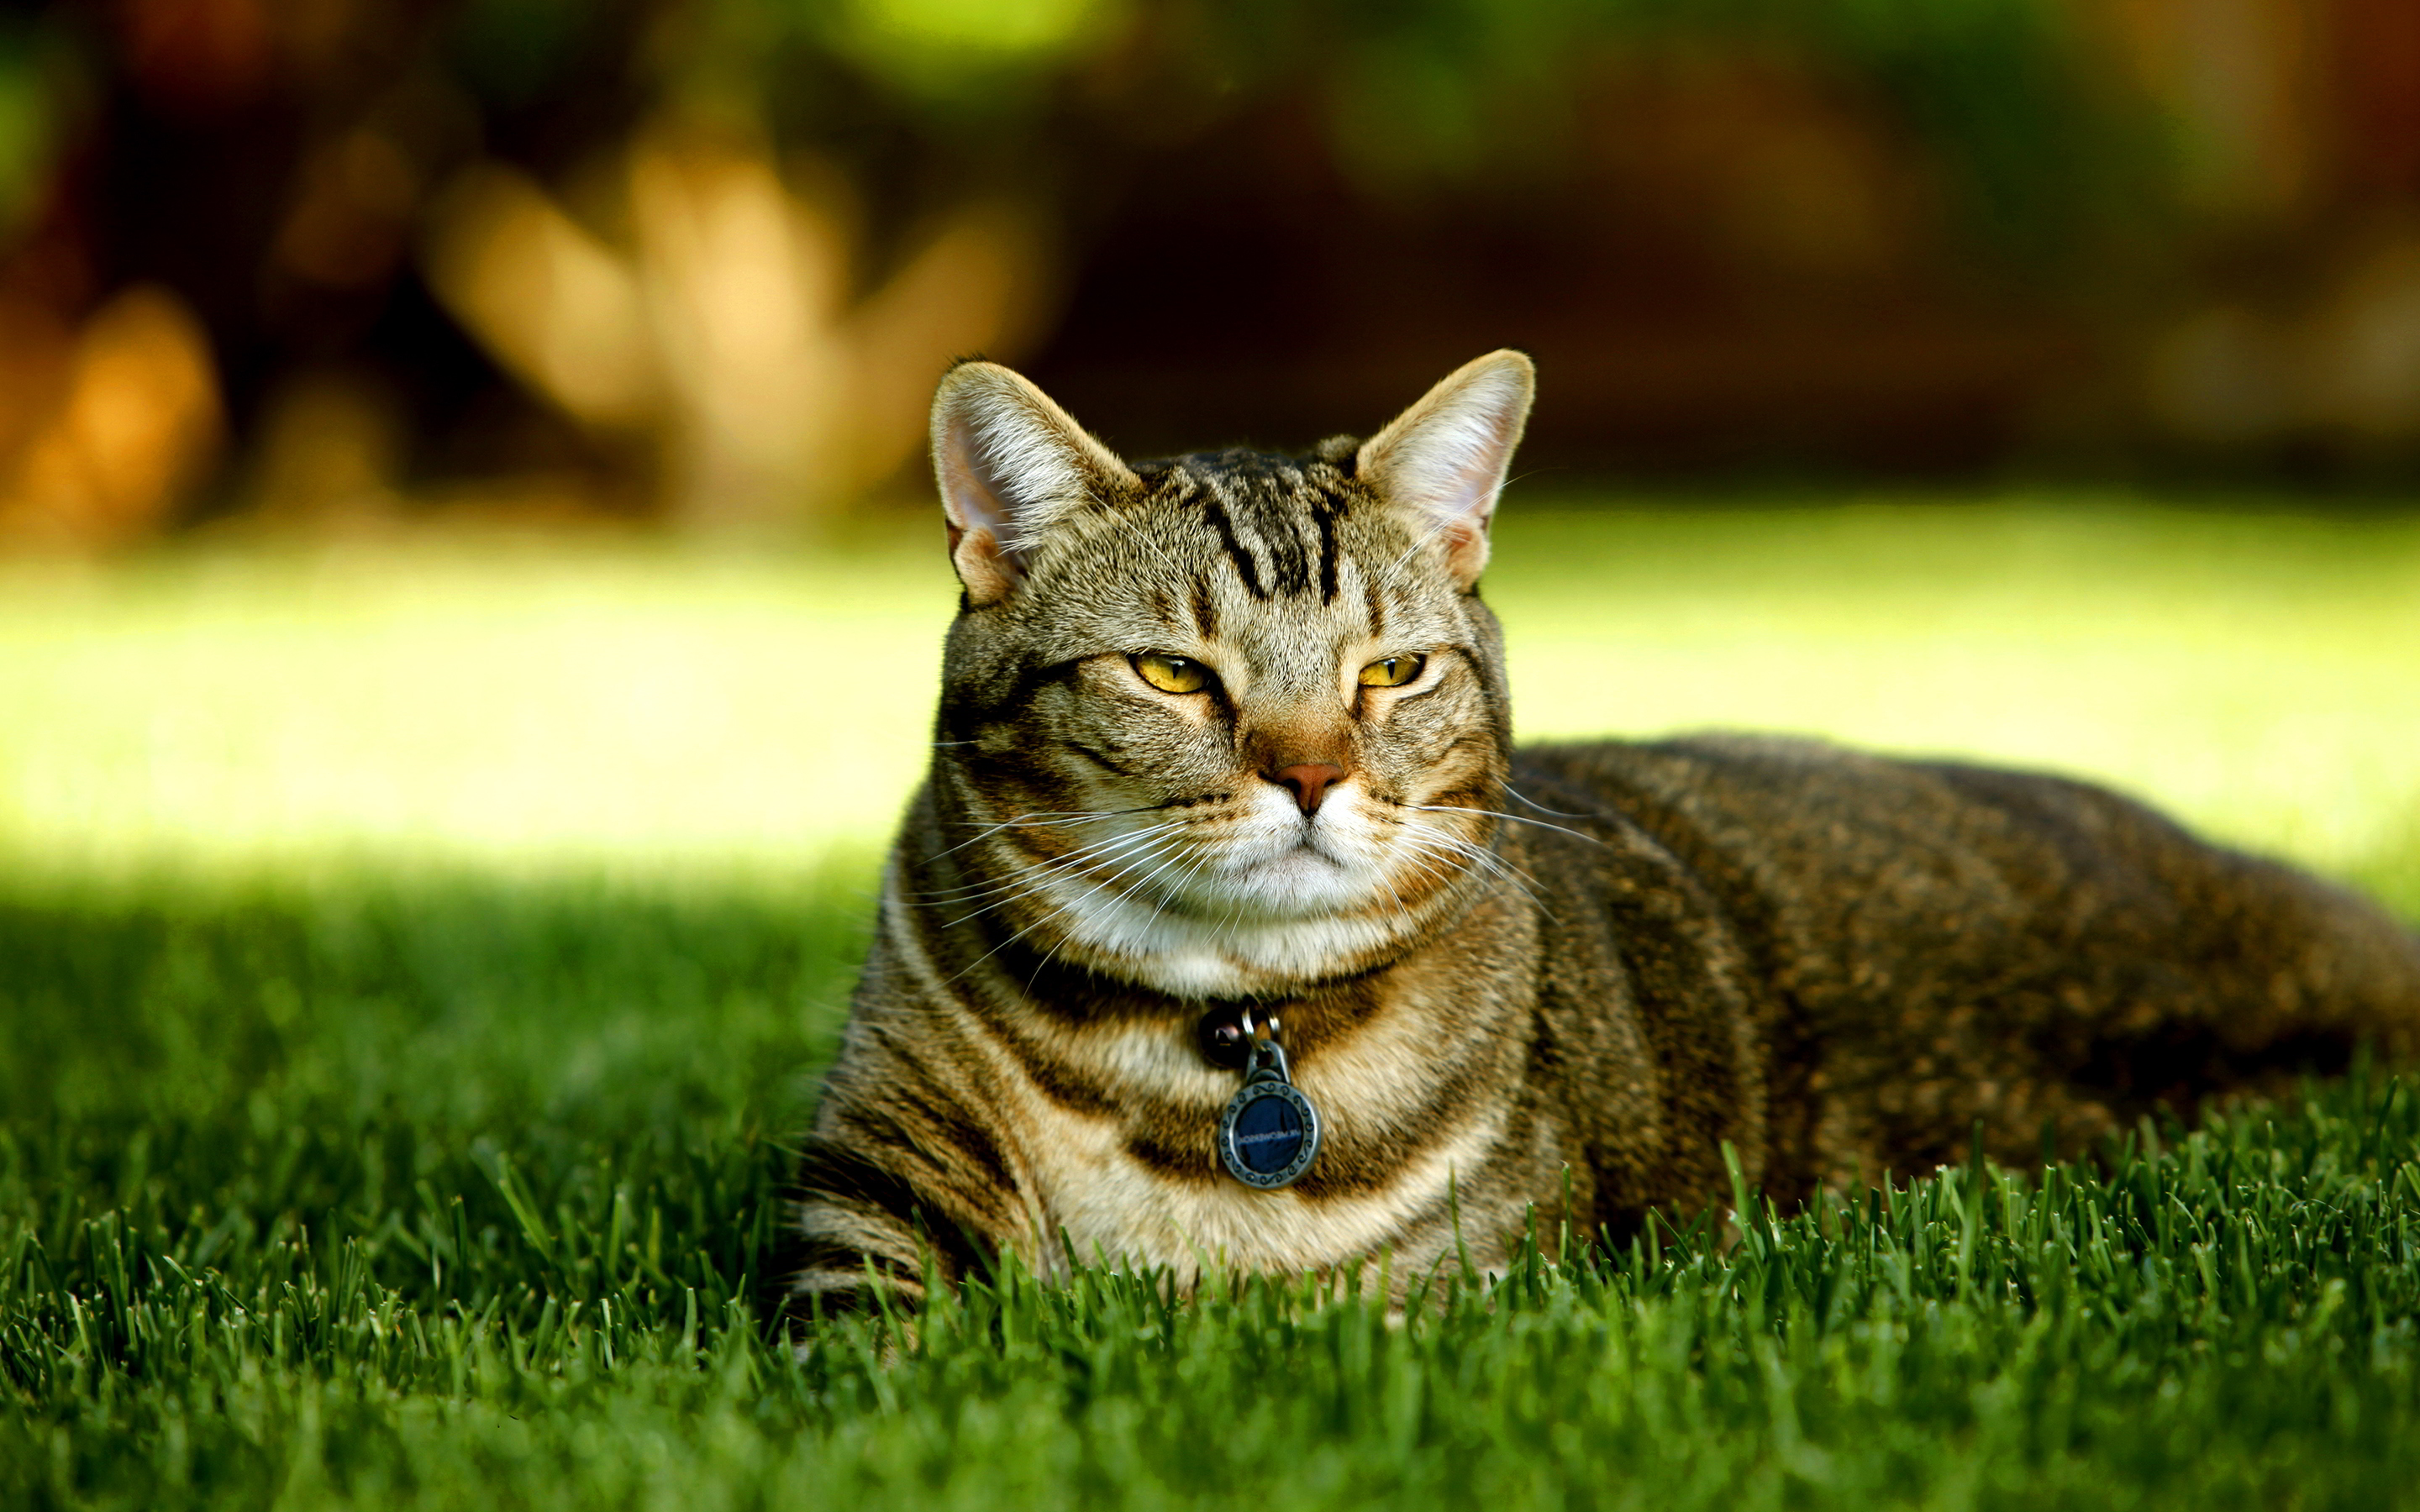 Cute Cat In Grass 2880x1800 Download Hd Wallpaper Wallpapertip